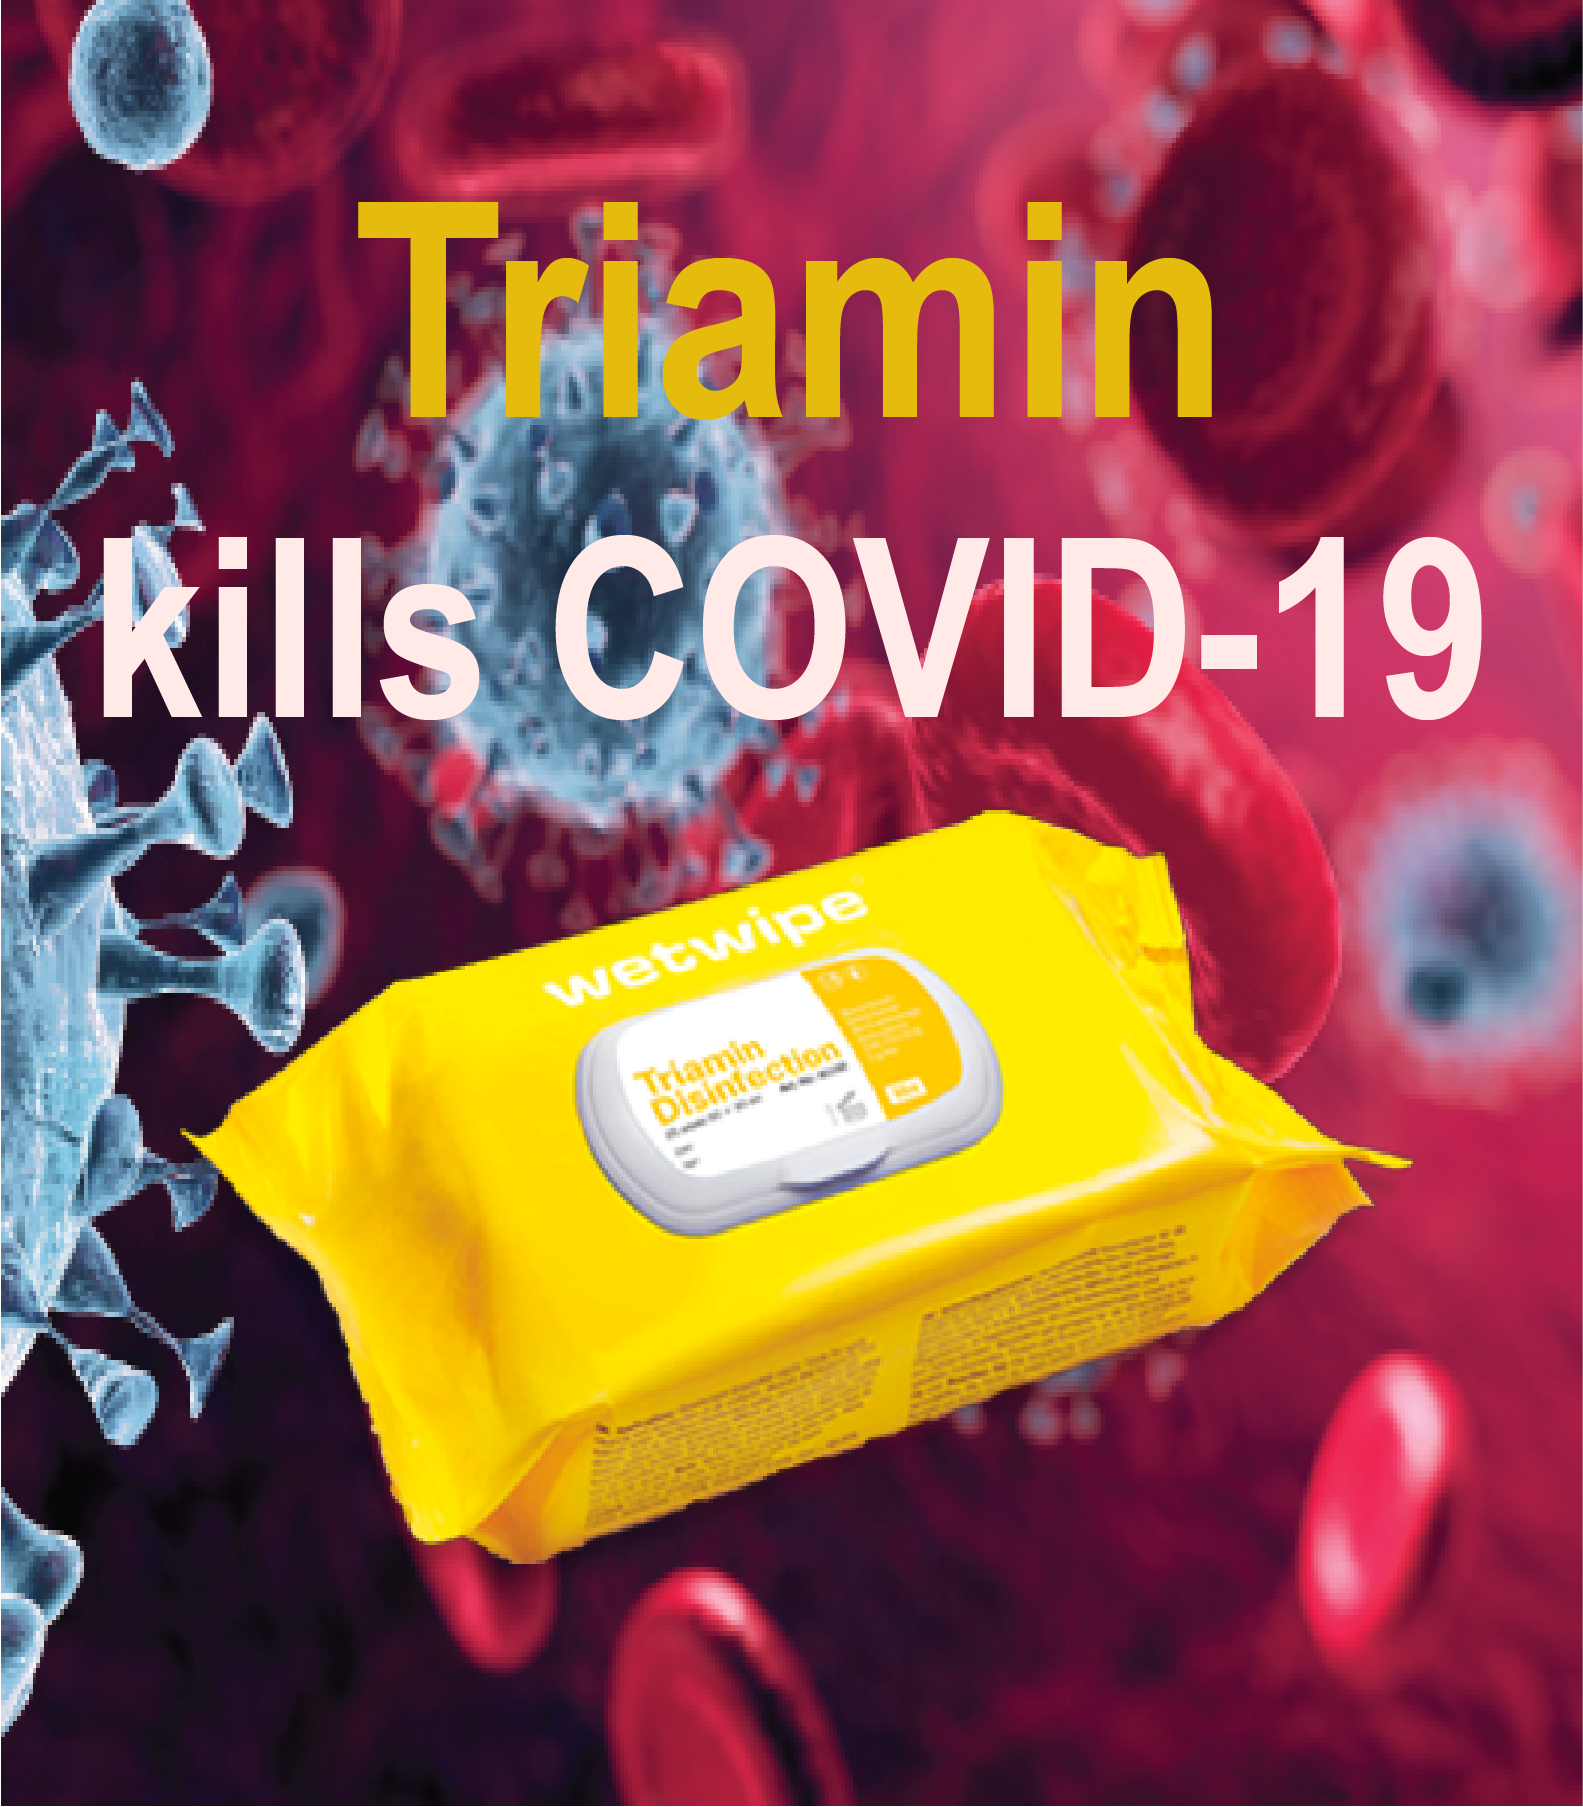 Triamin kills Covid19